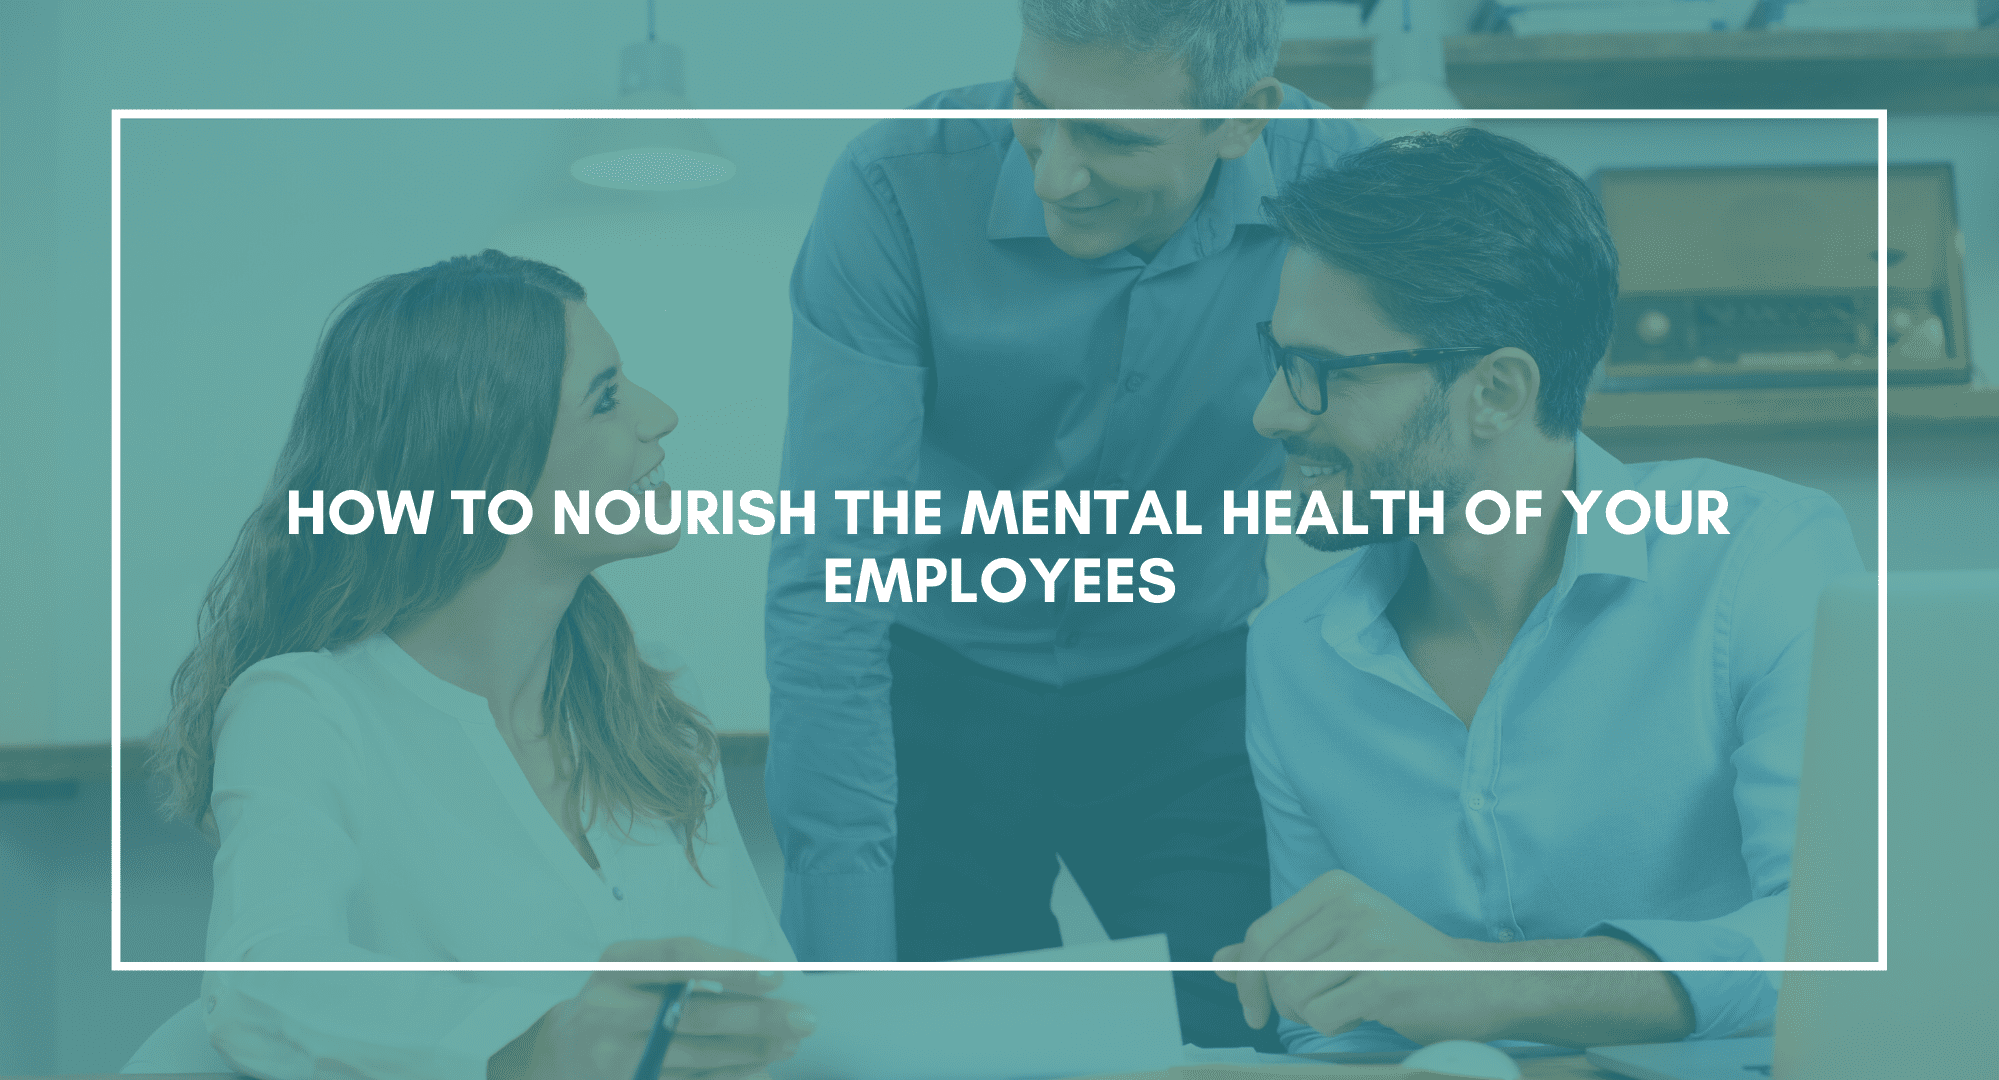 how to support the mental health of remote employees. Mental well-being of remote employees. Tips to suppport mental health of remote employees.